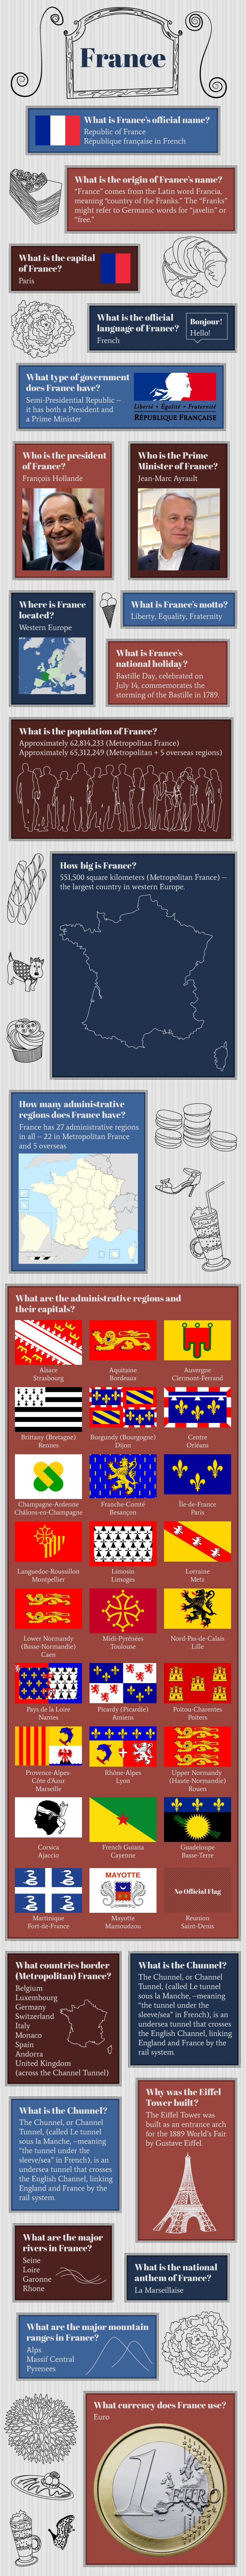 Infographic of France Fast Facts 	http://www.mapsofworld.com/pages/fast-facts/infographic-of-france-fast-facts/